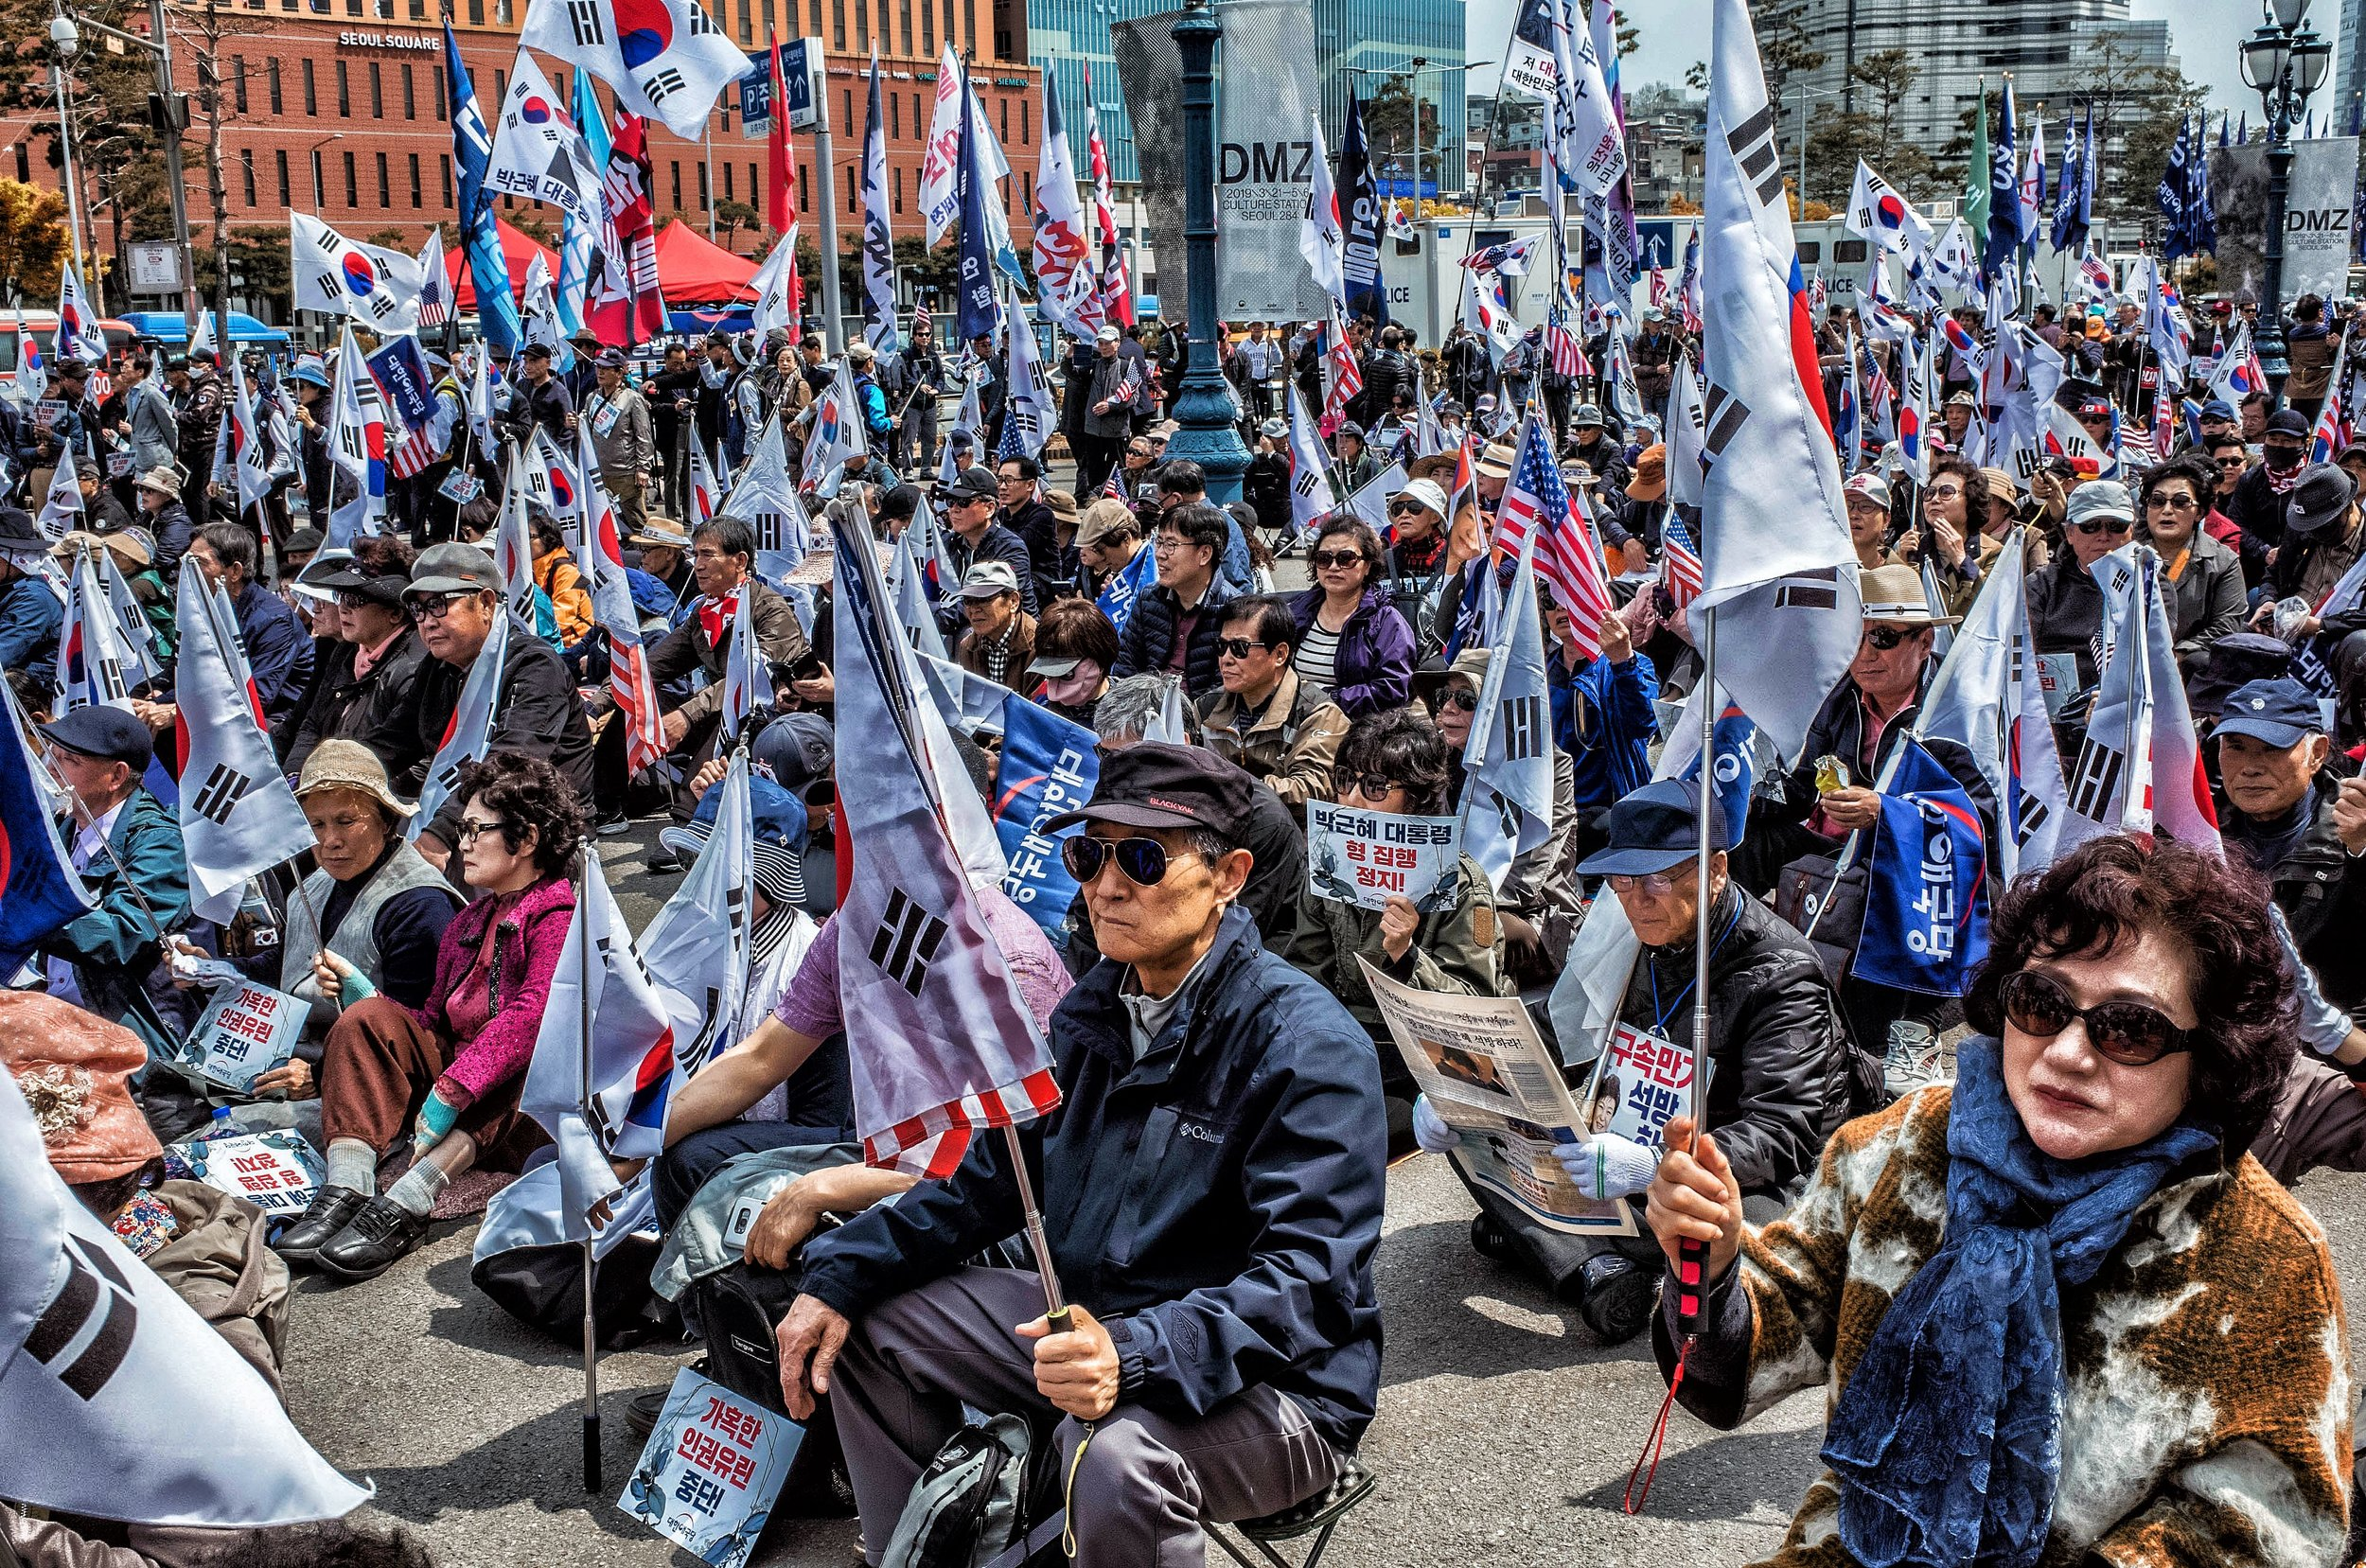 Seoul's Older Generation Takes it to The Streets - by Michael Kennedy